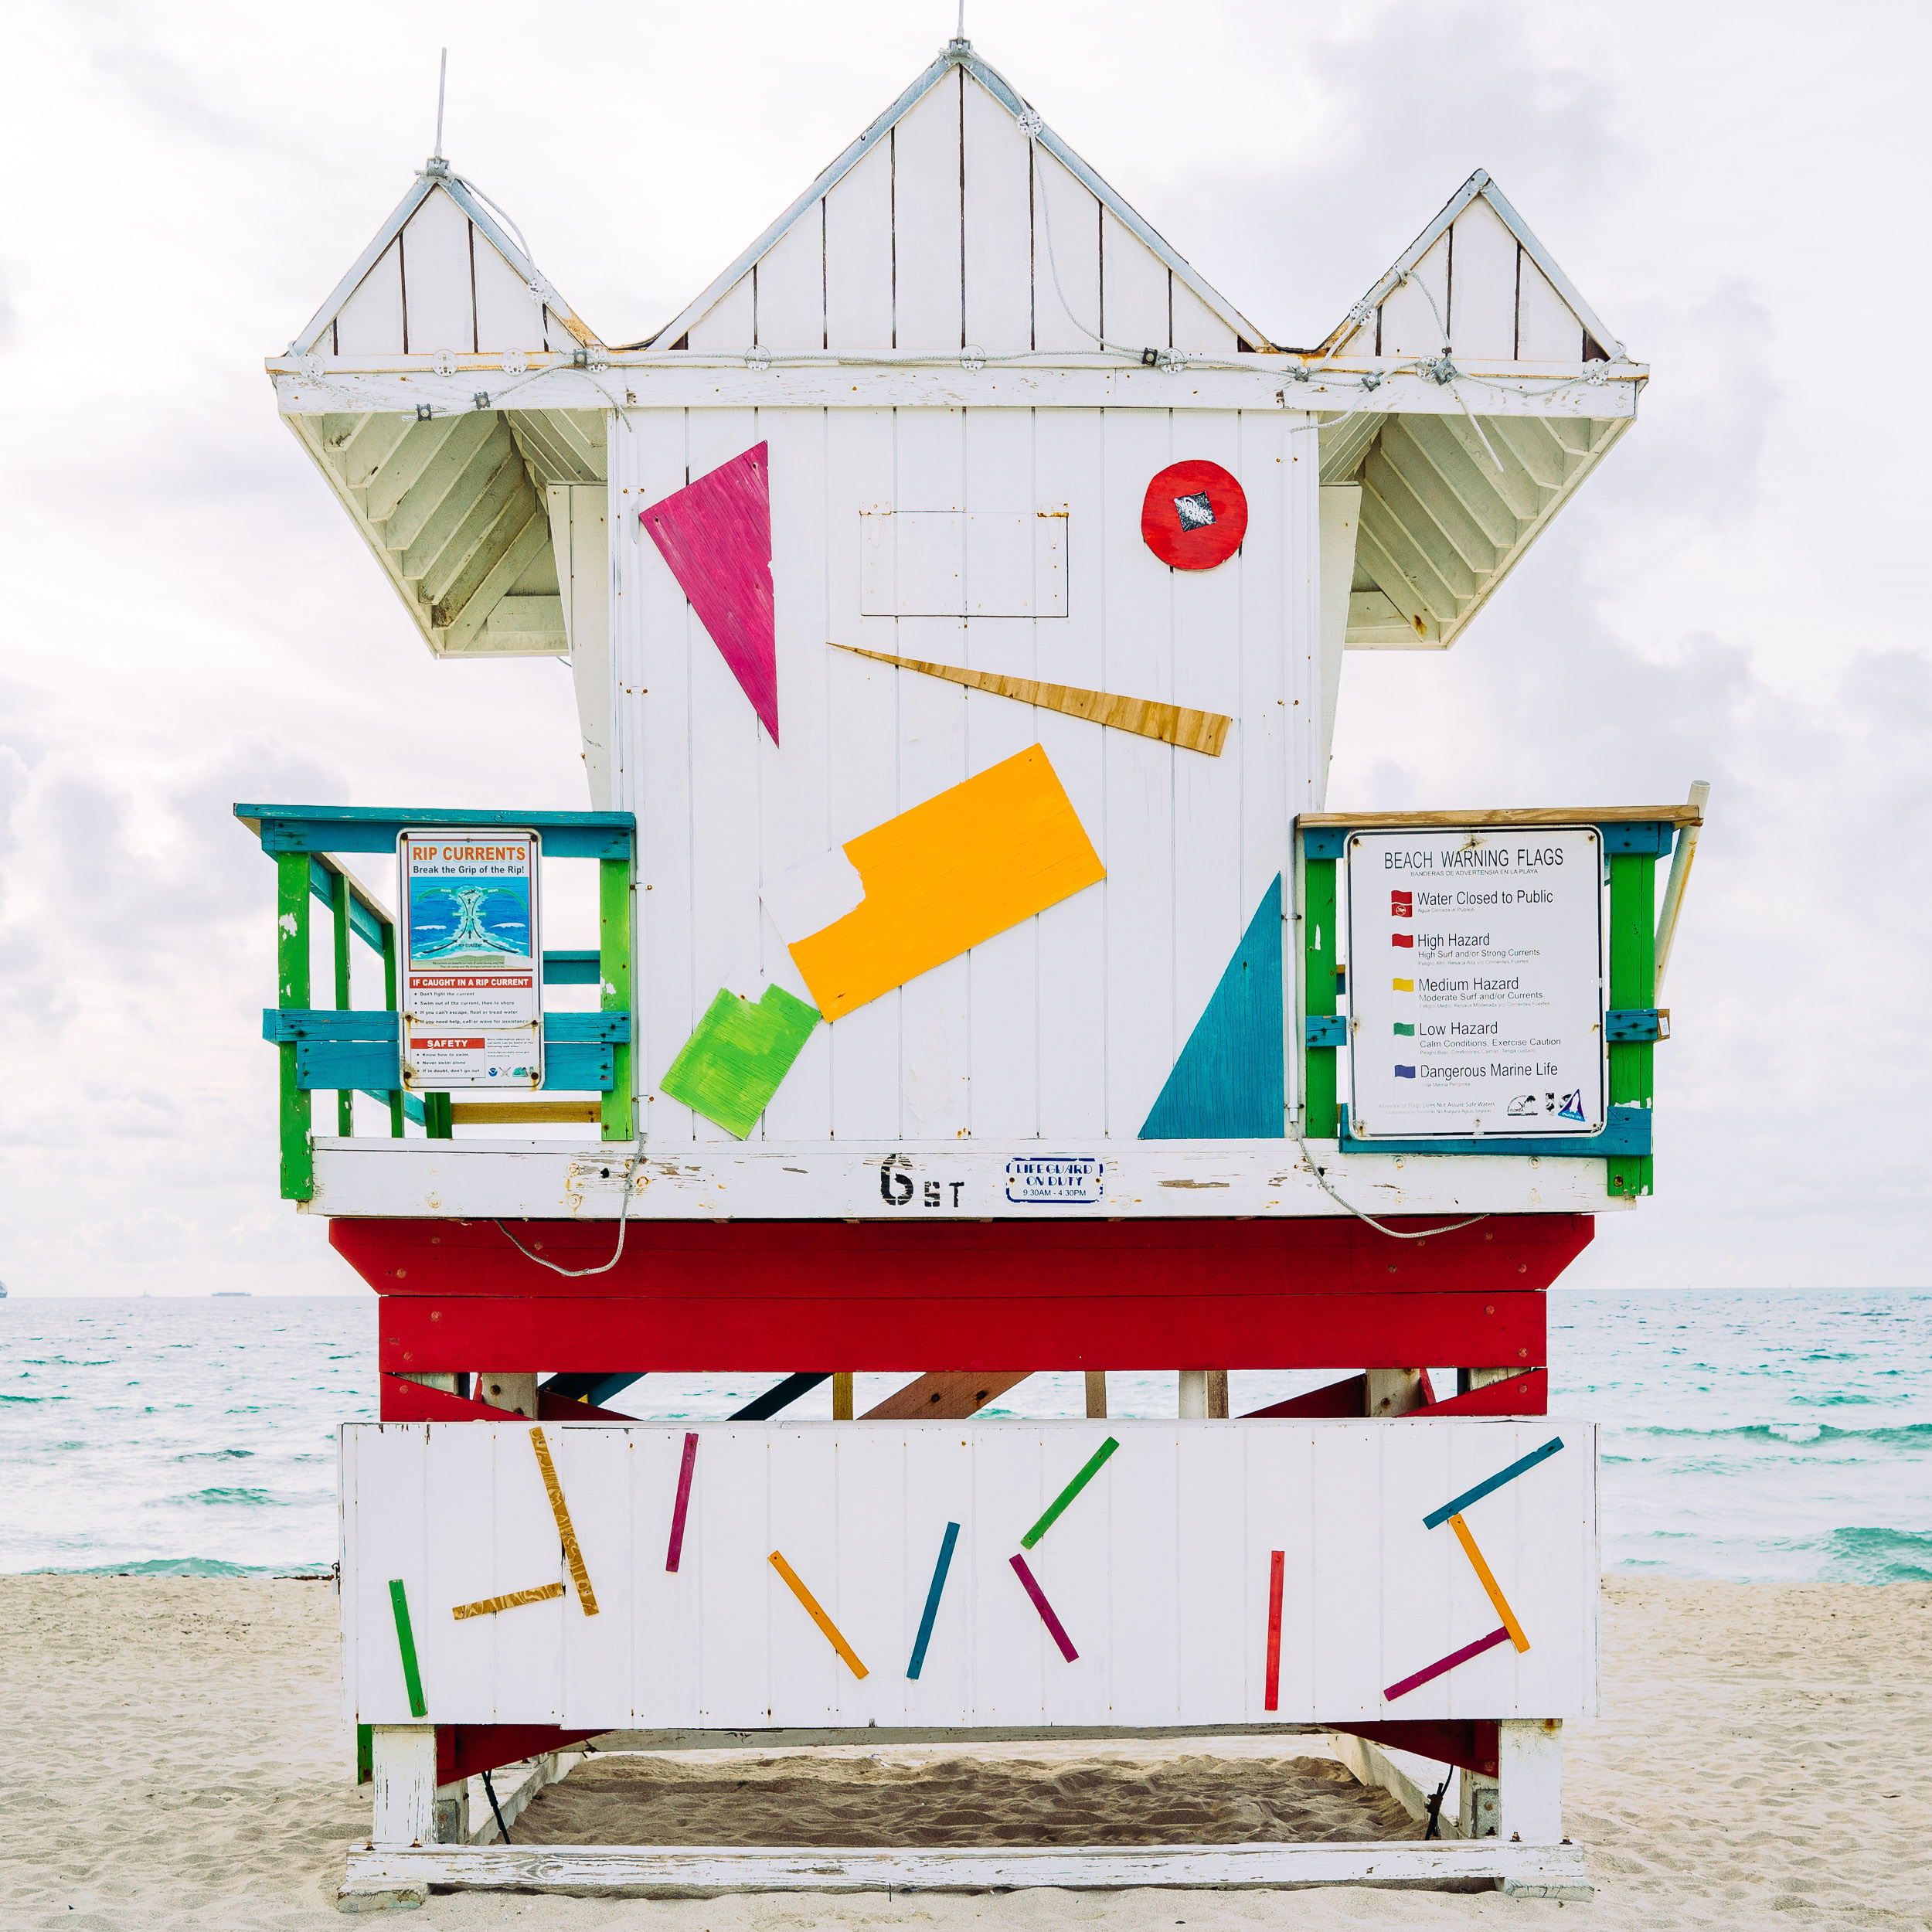 6th Miami Lifeguard Stand Rear View (Previous)